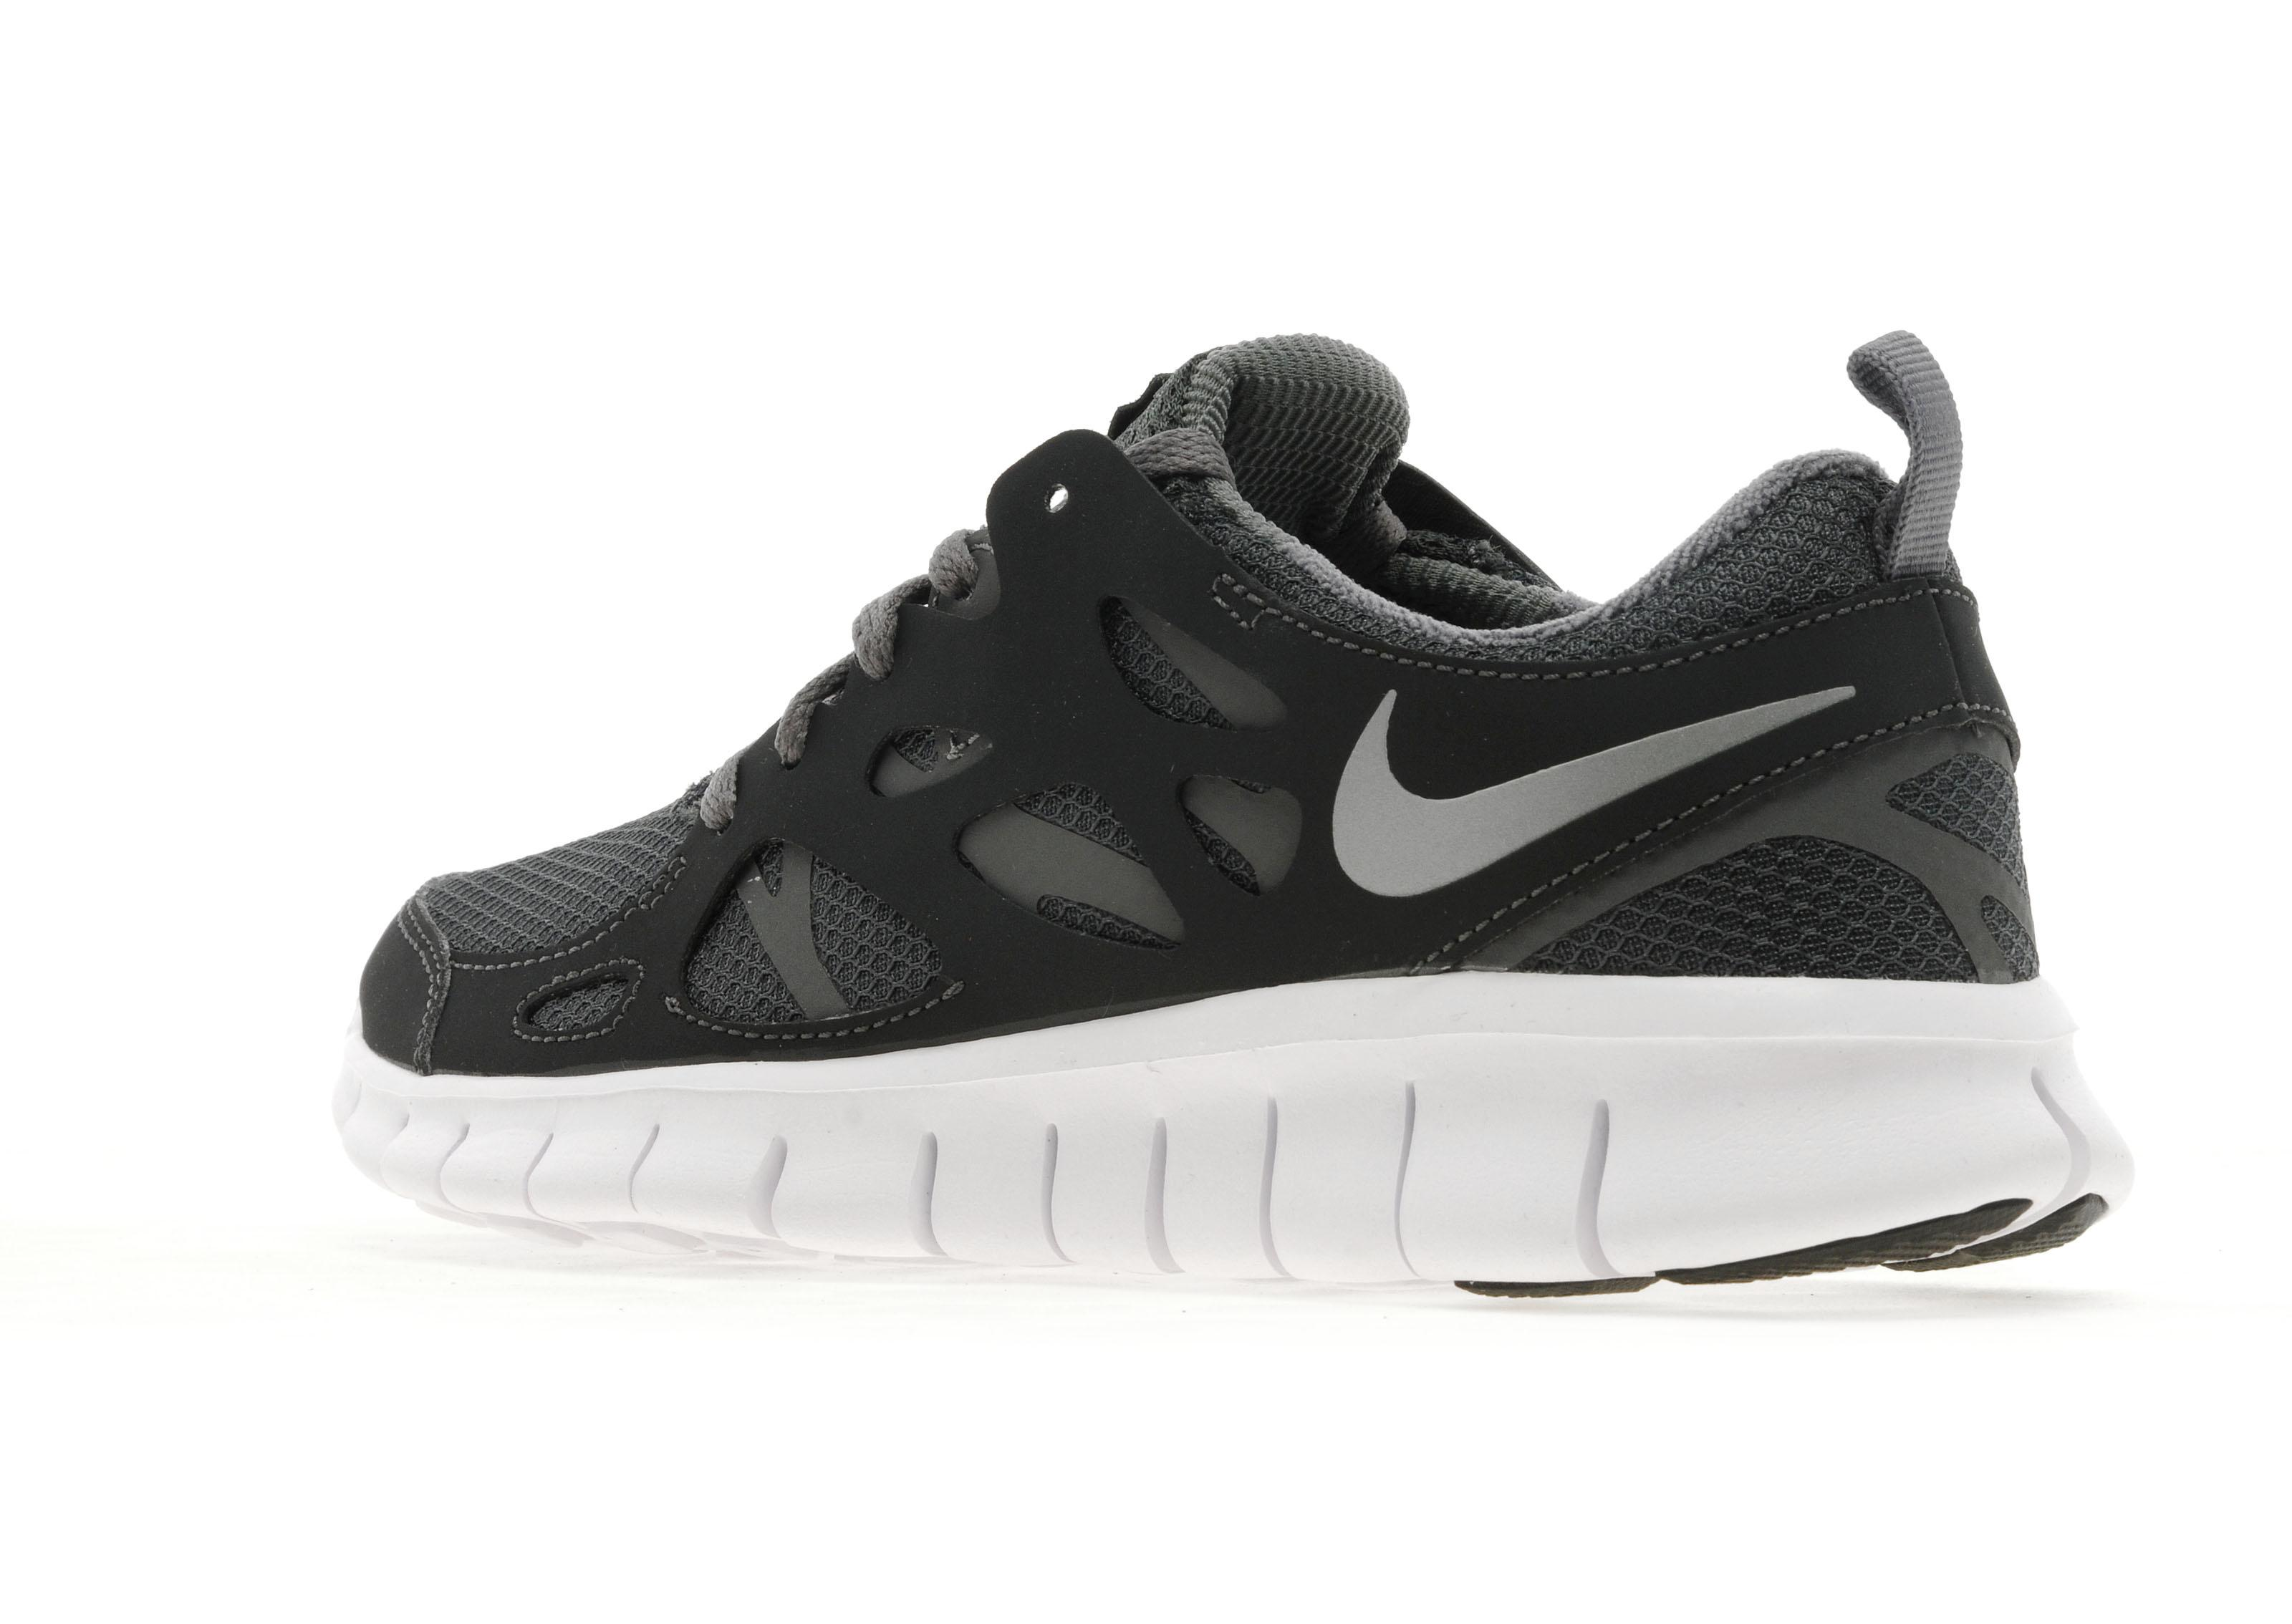 the latest f5ab4 641d6 ... shop promo code for nike roshe run junior jd 3c779 75ce1 393d2 d934e